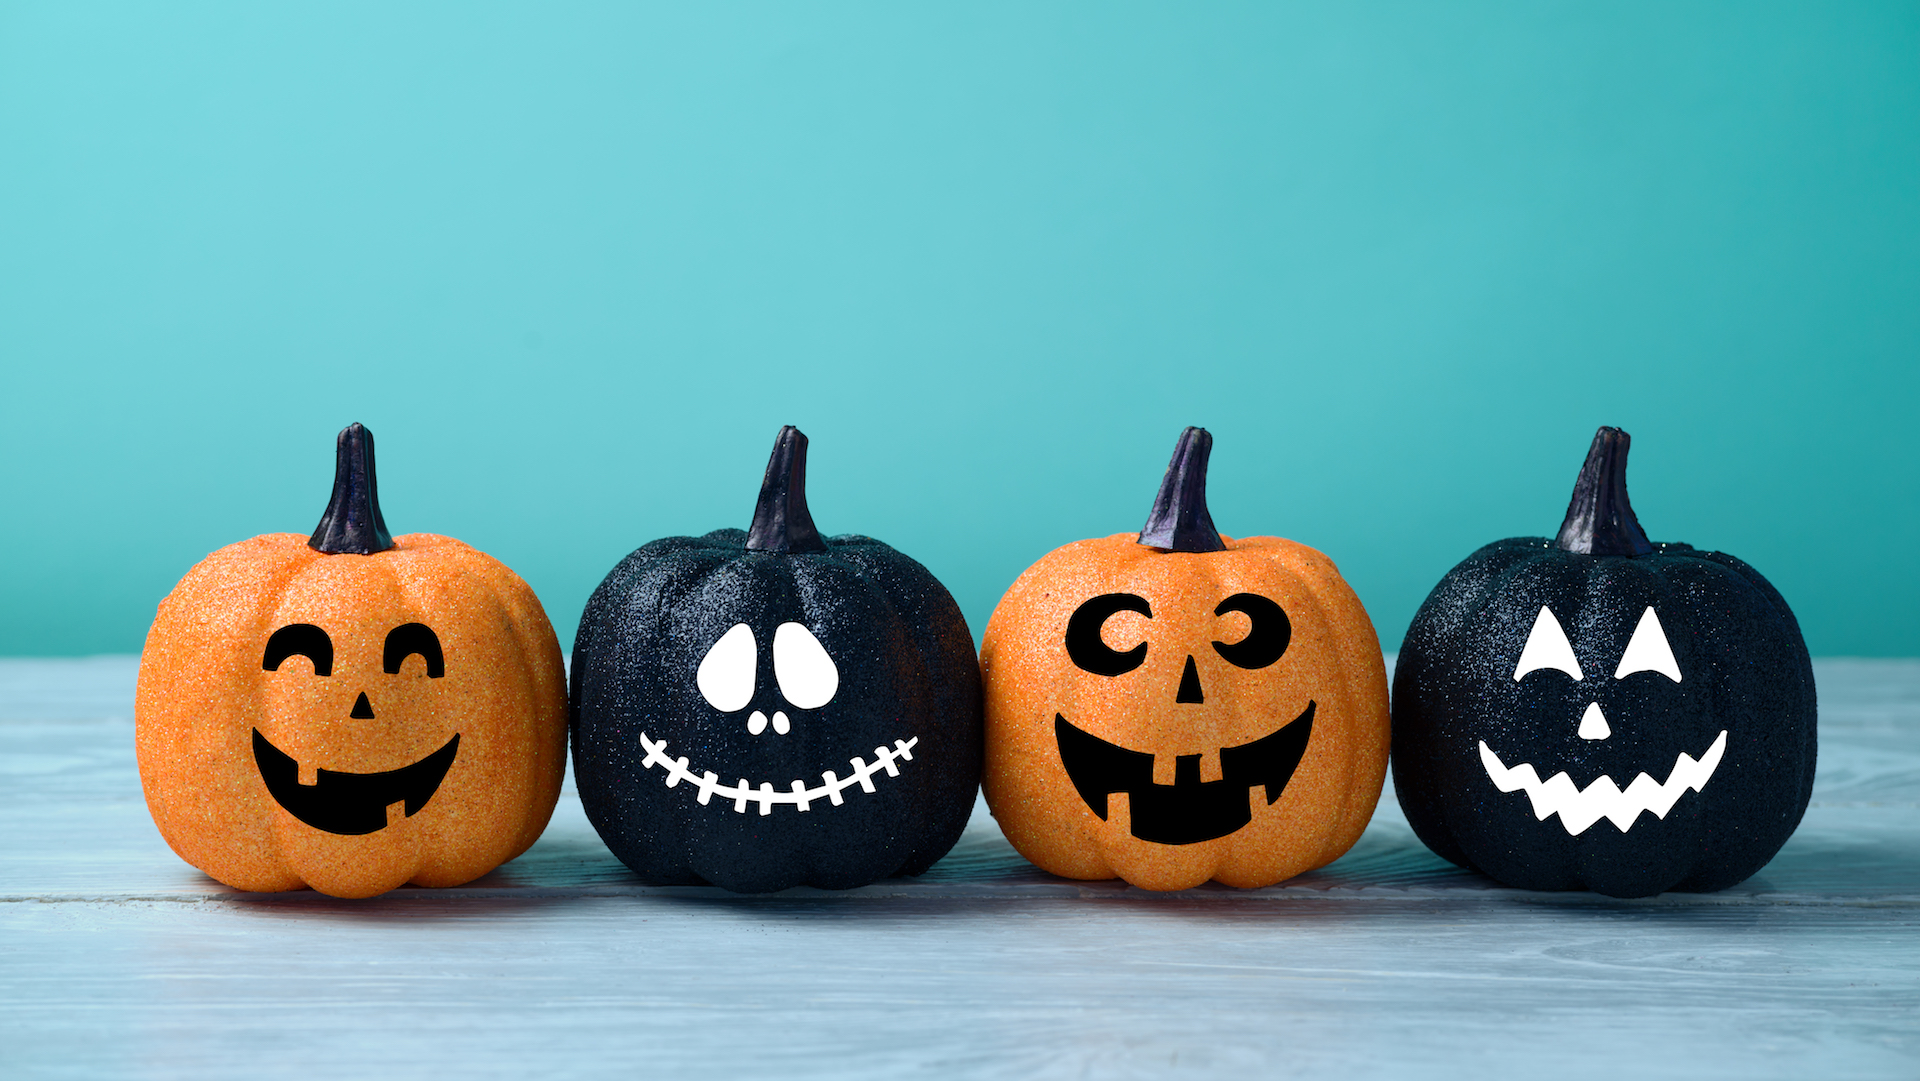 Pumpkin carving templates galore for your best jack o lanterns